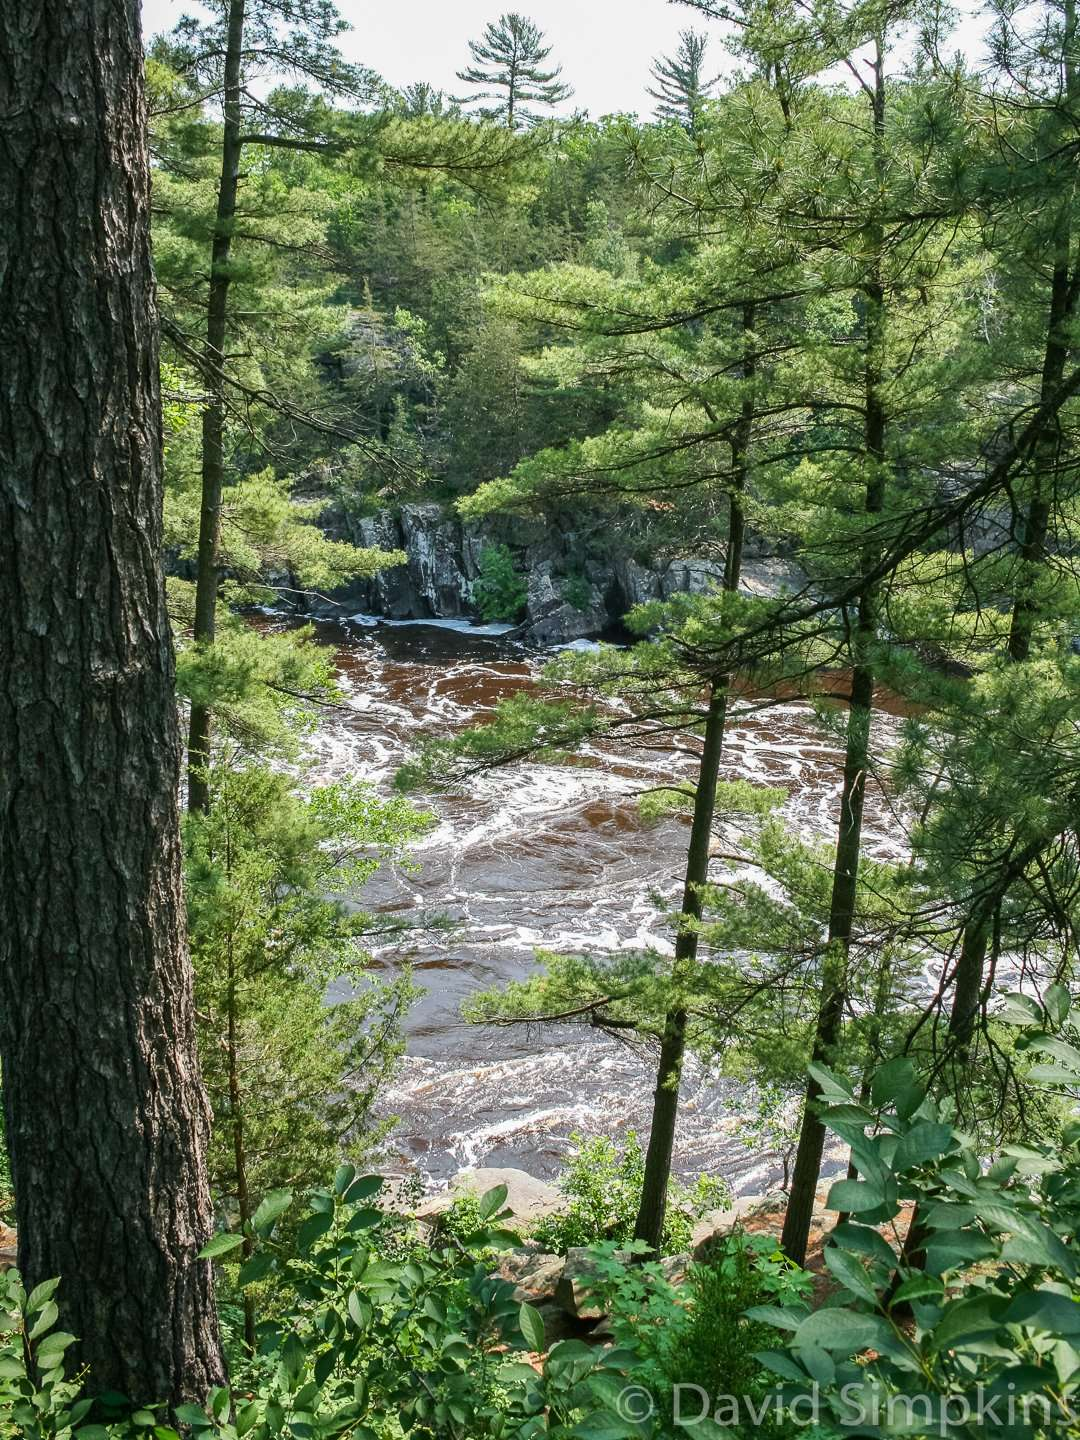 One of many spots on the River Trail where hikers can get a glimpse of the St. Crox River at Interstate State Park